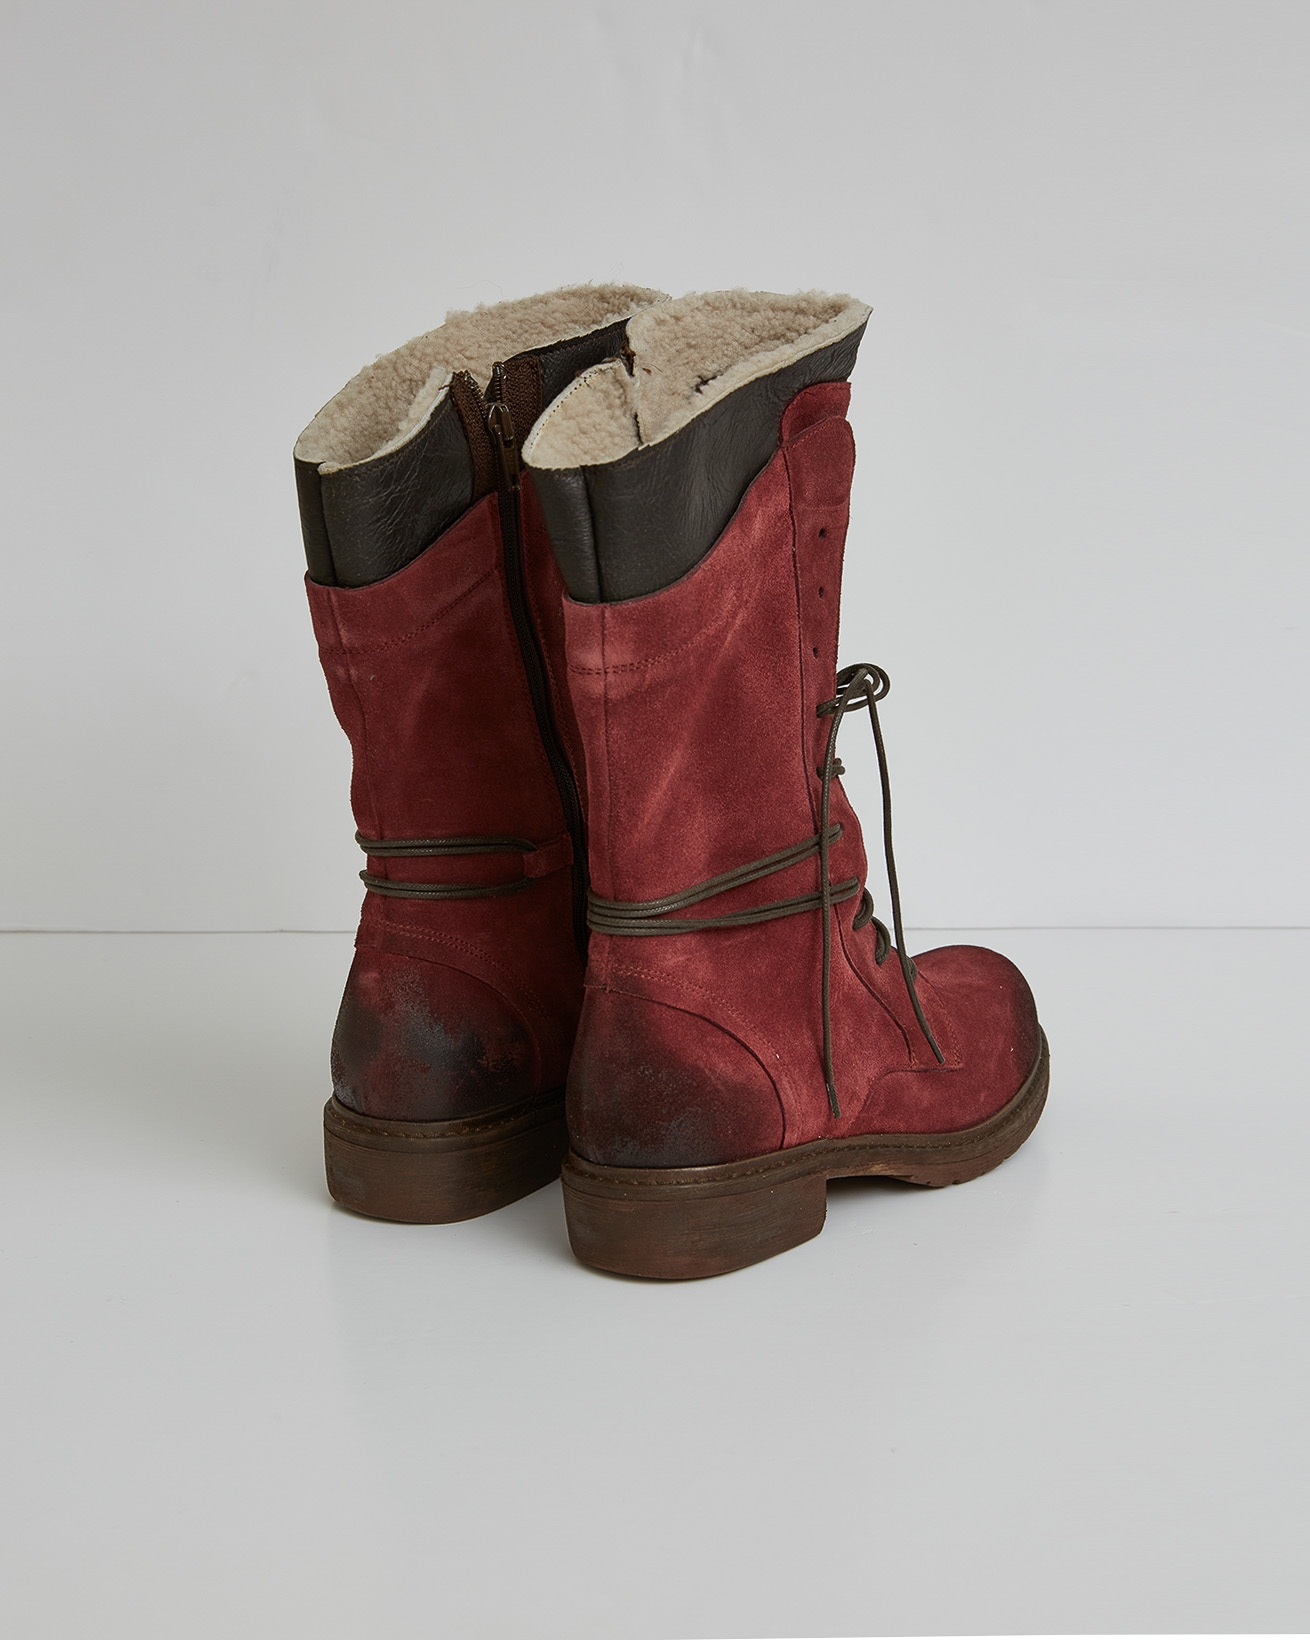 2759-woodsman boots - berry red - size 37 - back.jpg